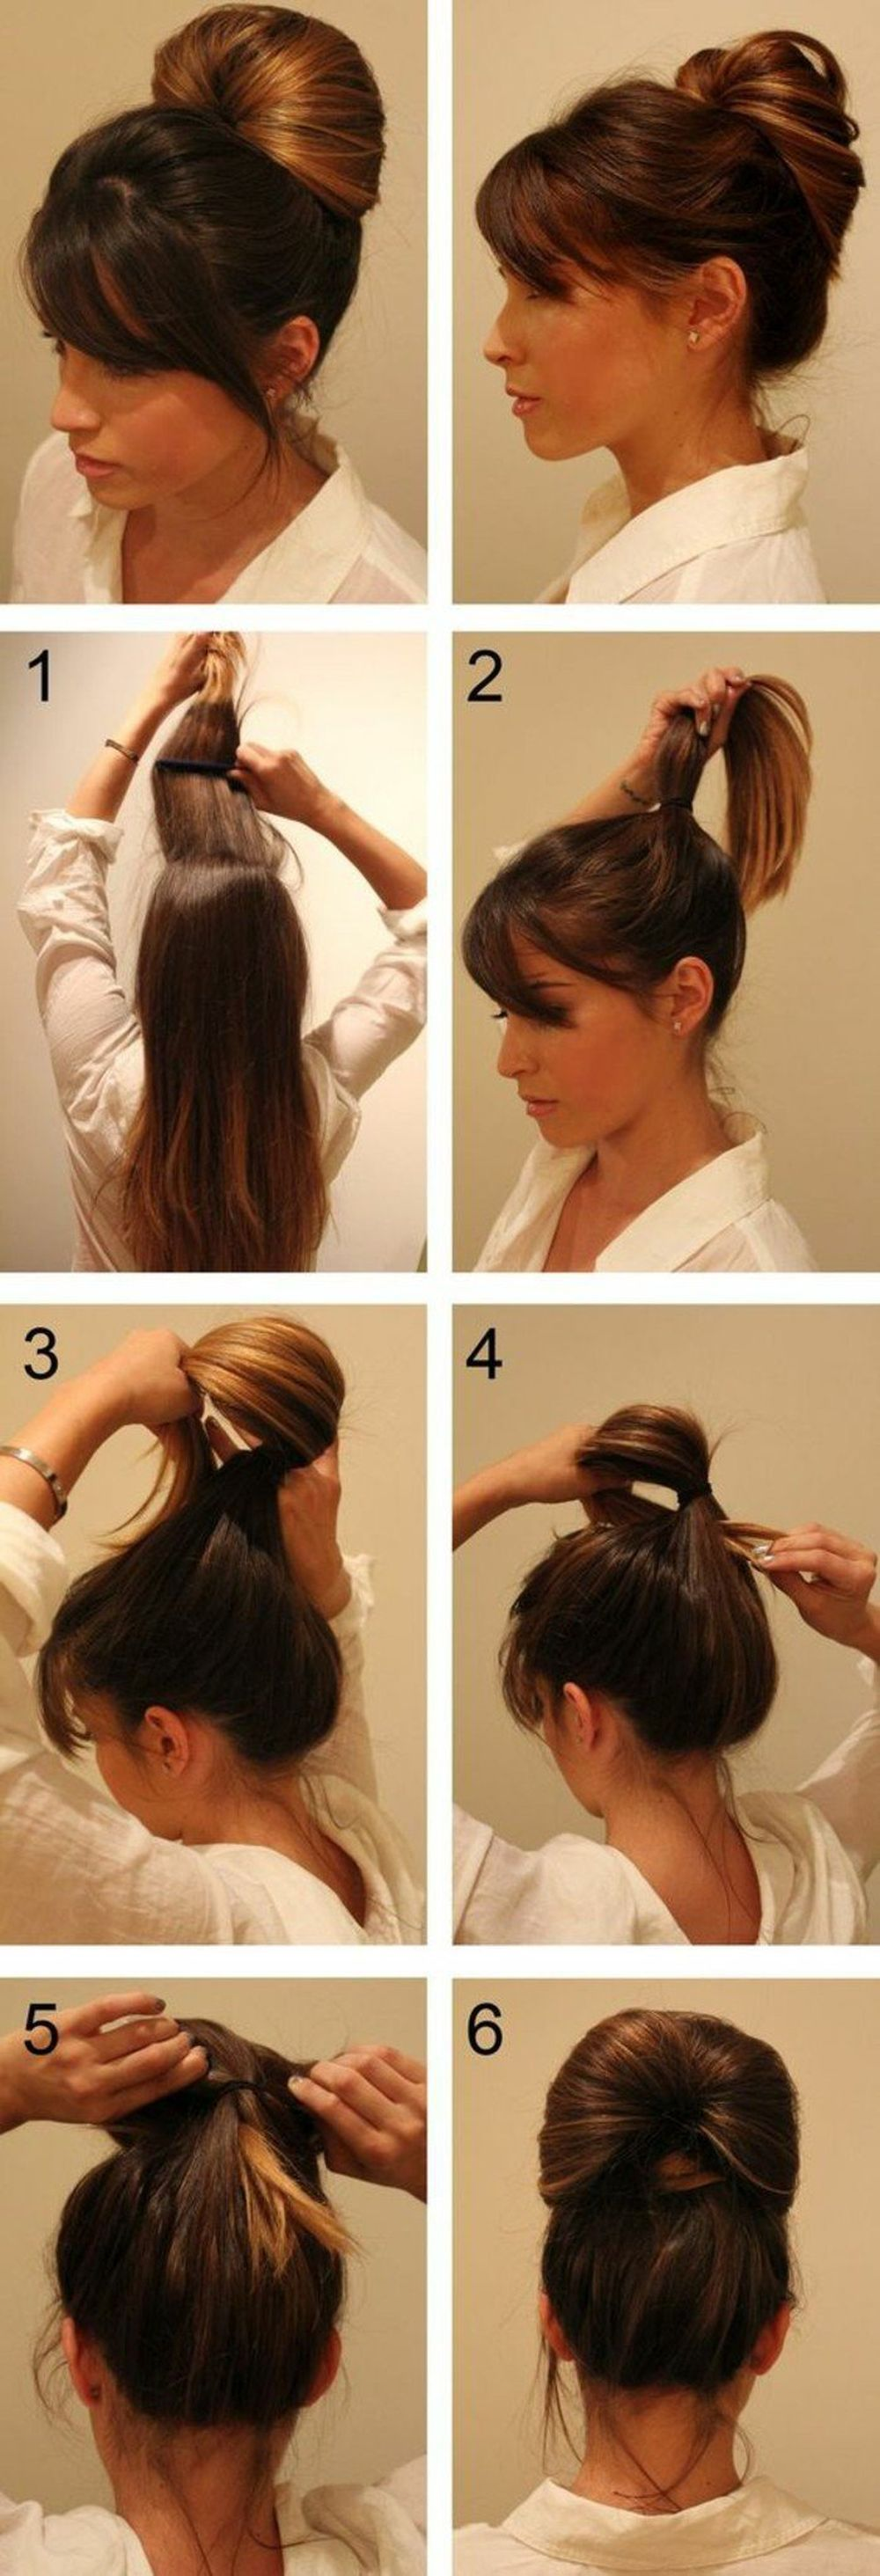 Breathtaking trending easy hairstyle ideas to try right now by